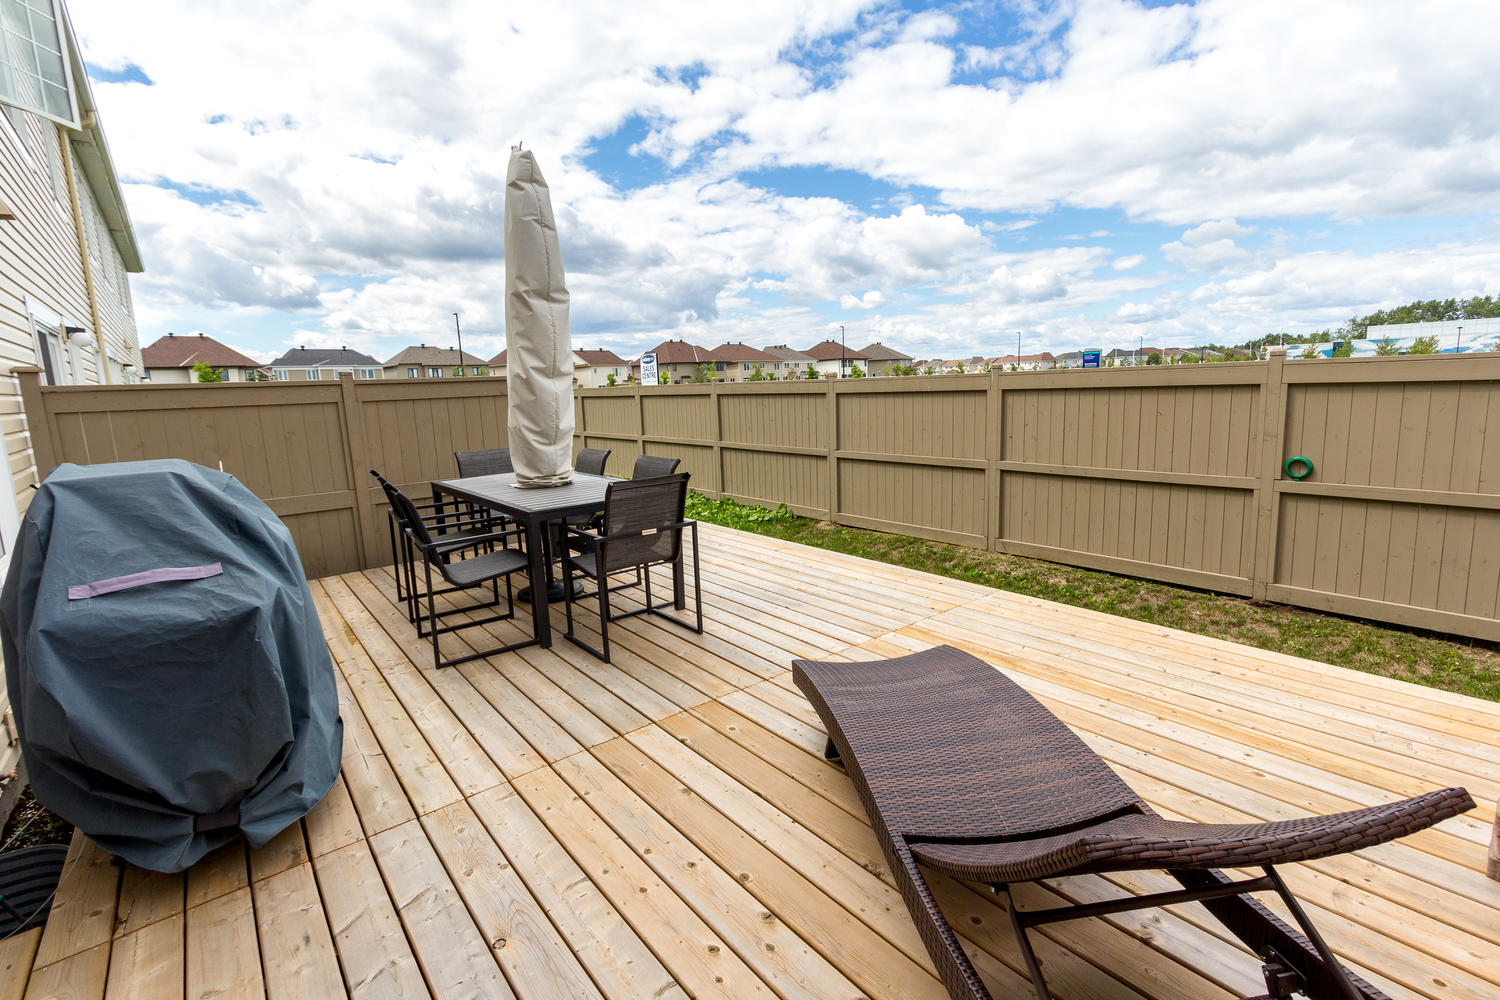 Large Deck in the Backyard, Perfect for BBQ's, Entertaining, and watching the sunsets.